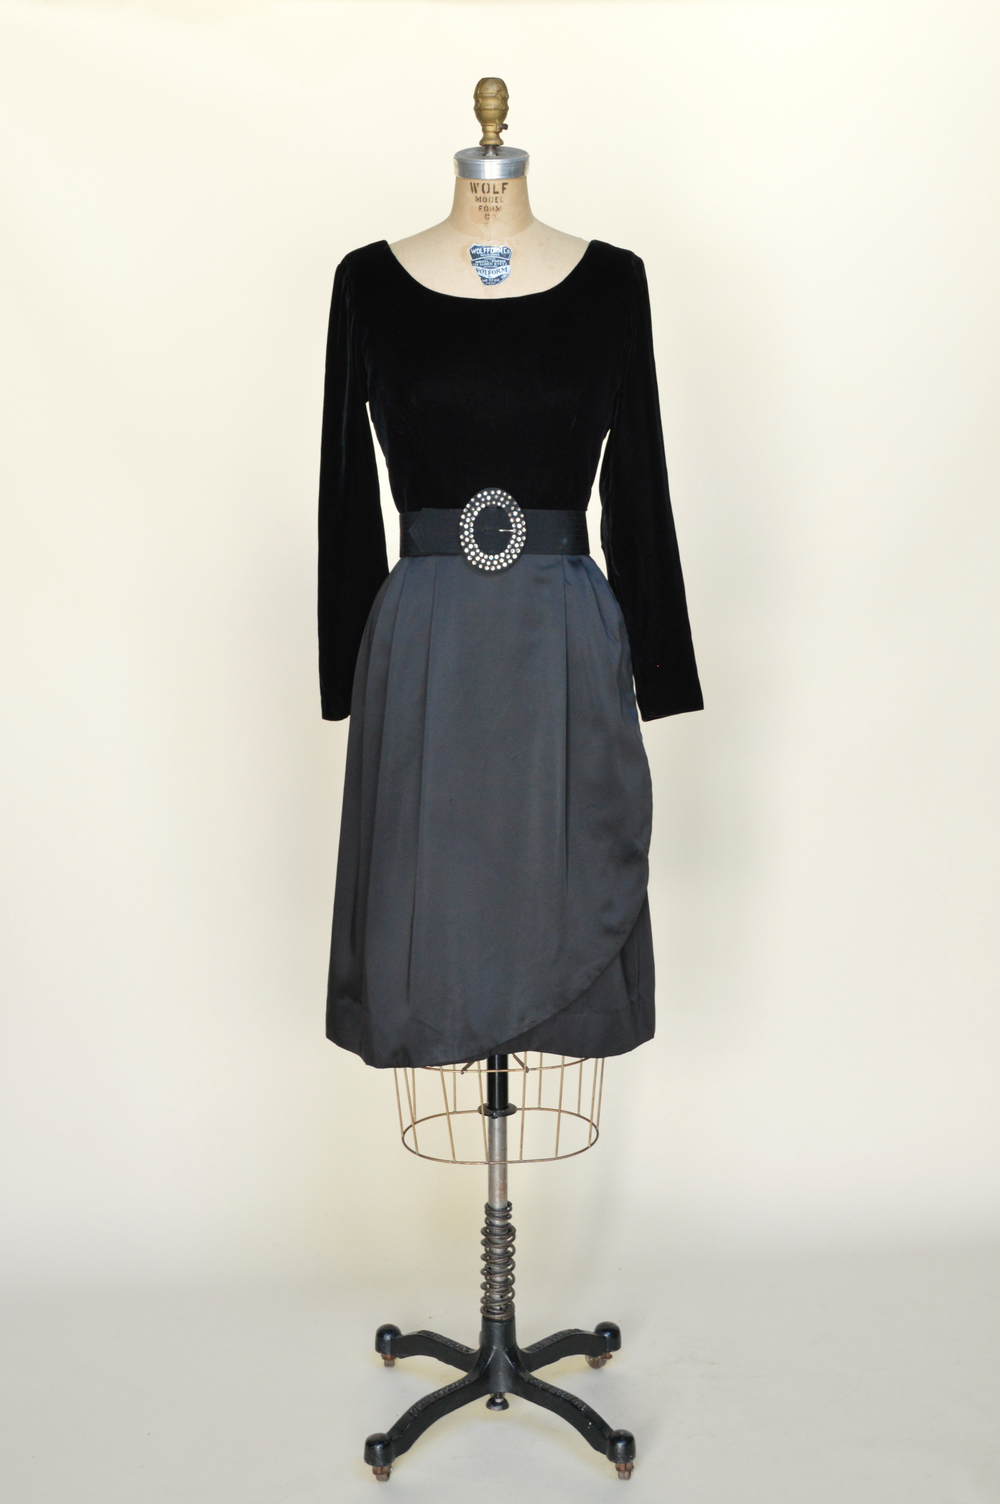 Vintage black dress from Dalena Vintage